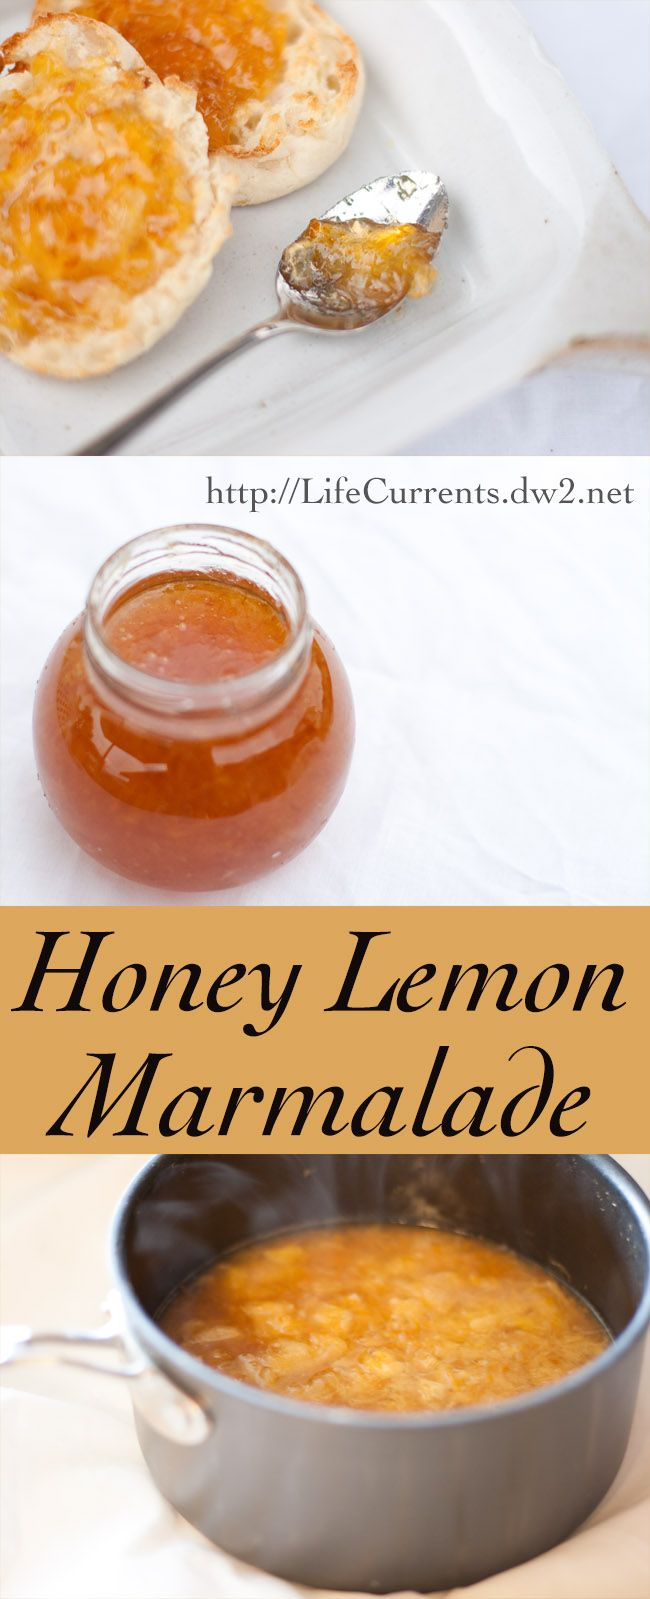 Honey Lemon Marmalade, like sunshine on your breakfast toast! By Life Currents